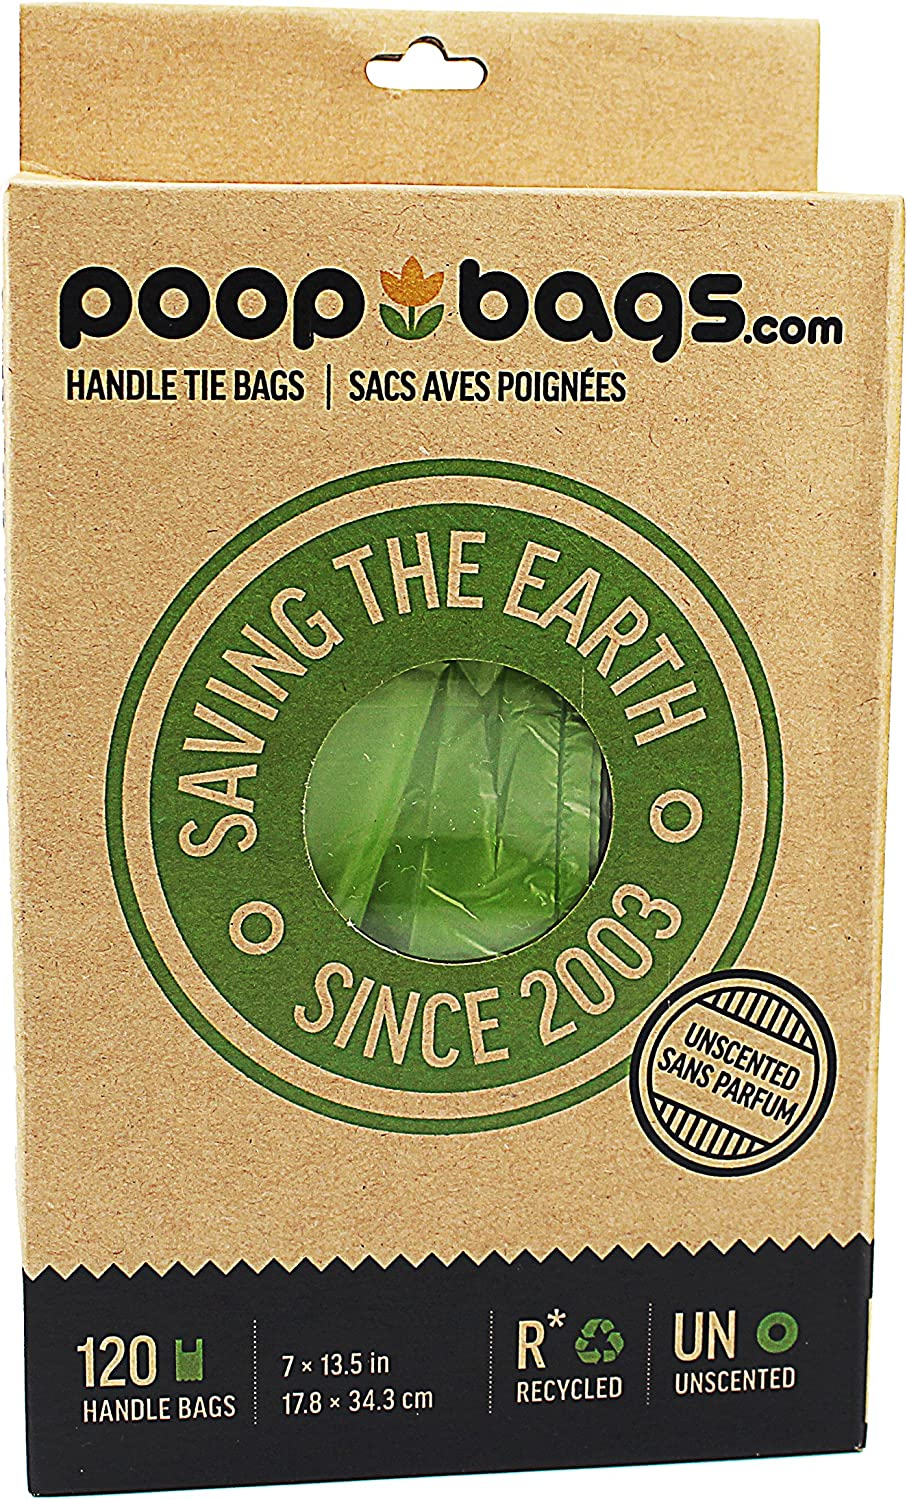 PoopBags Recycled 7x13 Dog Waste Bags with Handle Ties- 120 Count- Doggie Poop Bags, Eco on a Roll